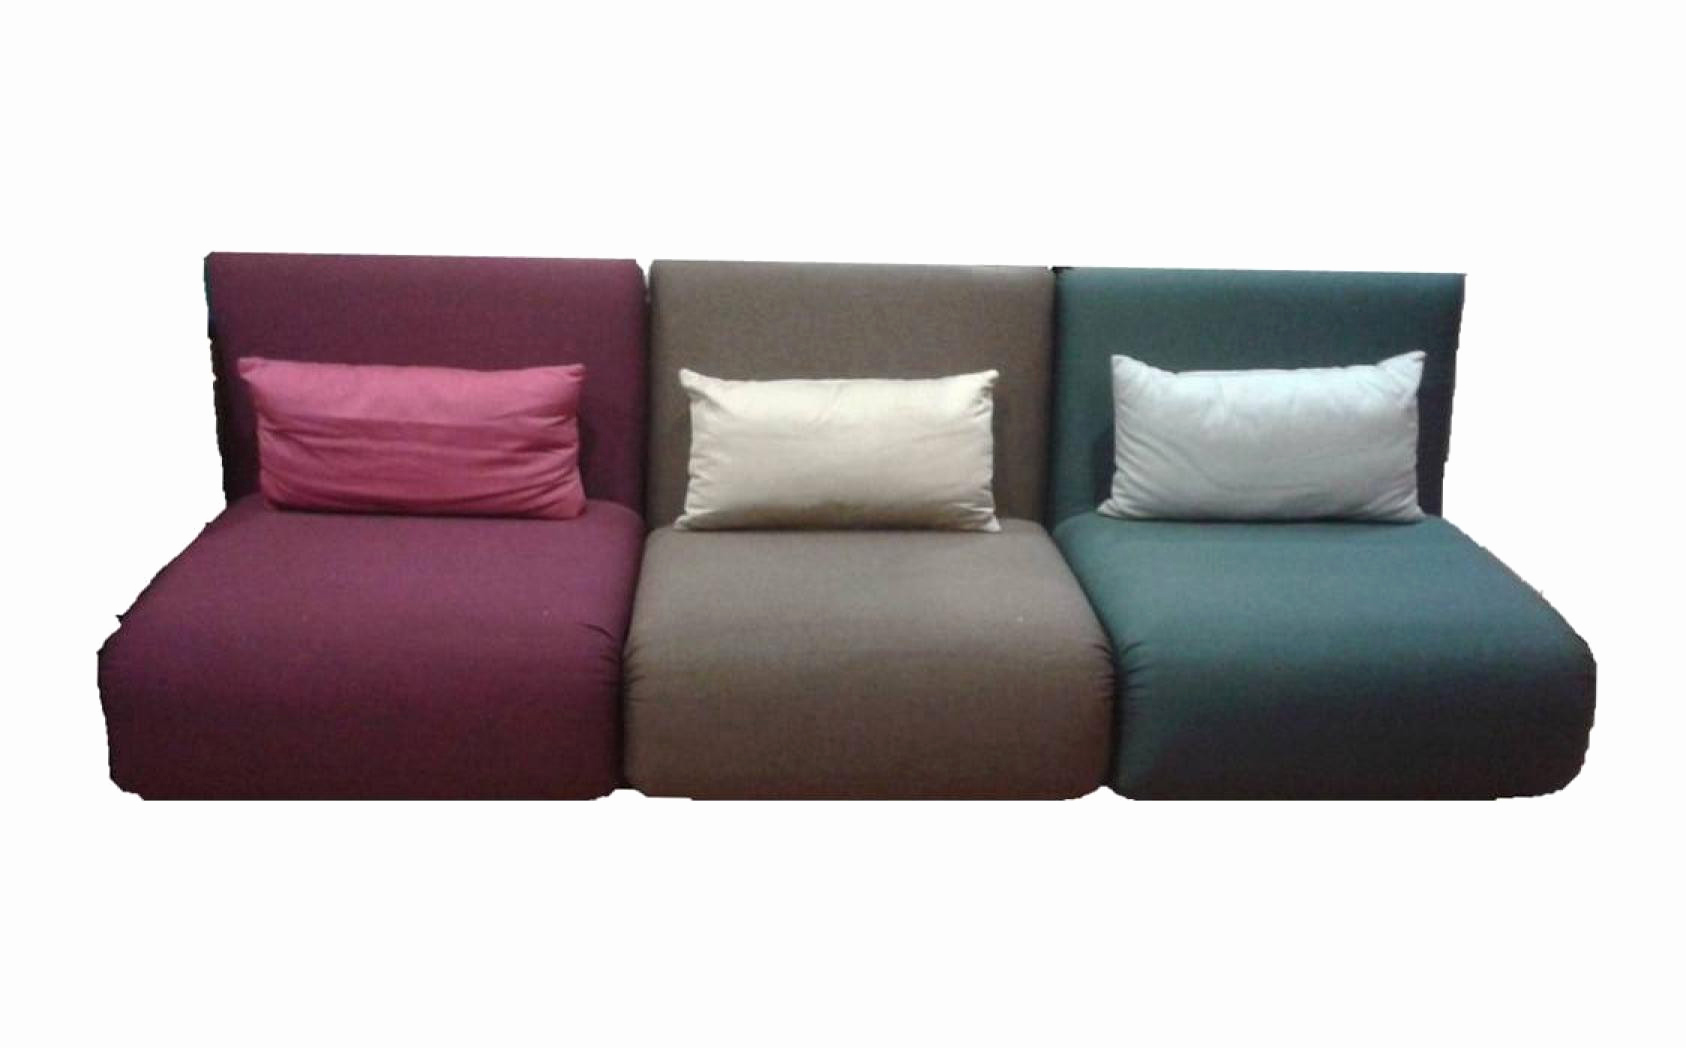 Ikea Ektorp Convertible Meilleur De Collection Ikea Convertible 2 Places Frais Ikea Fabric sofa Awesome Ikea Housse